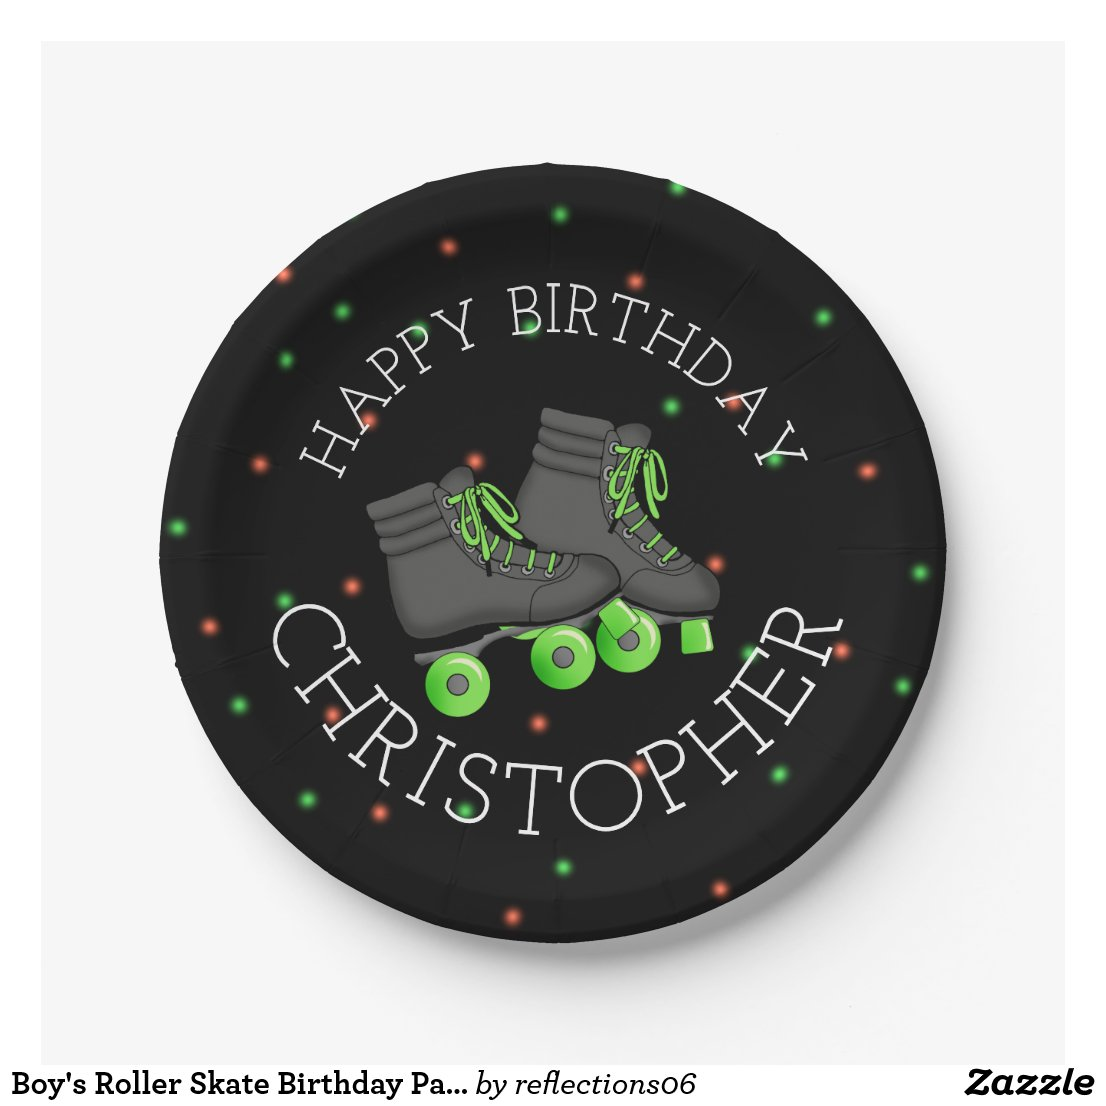 Boy's Roller Skate Birthday Party Paper Plate